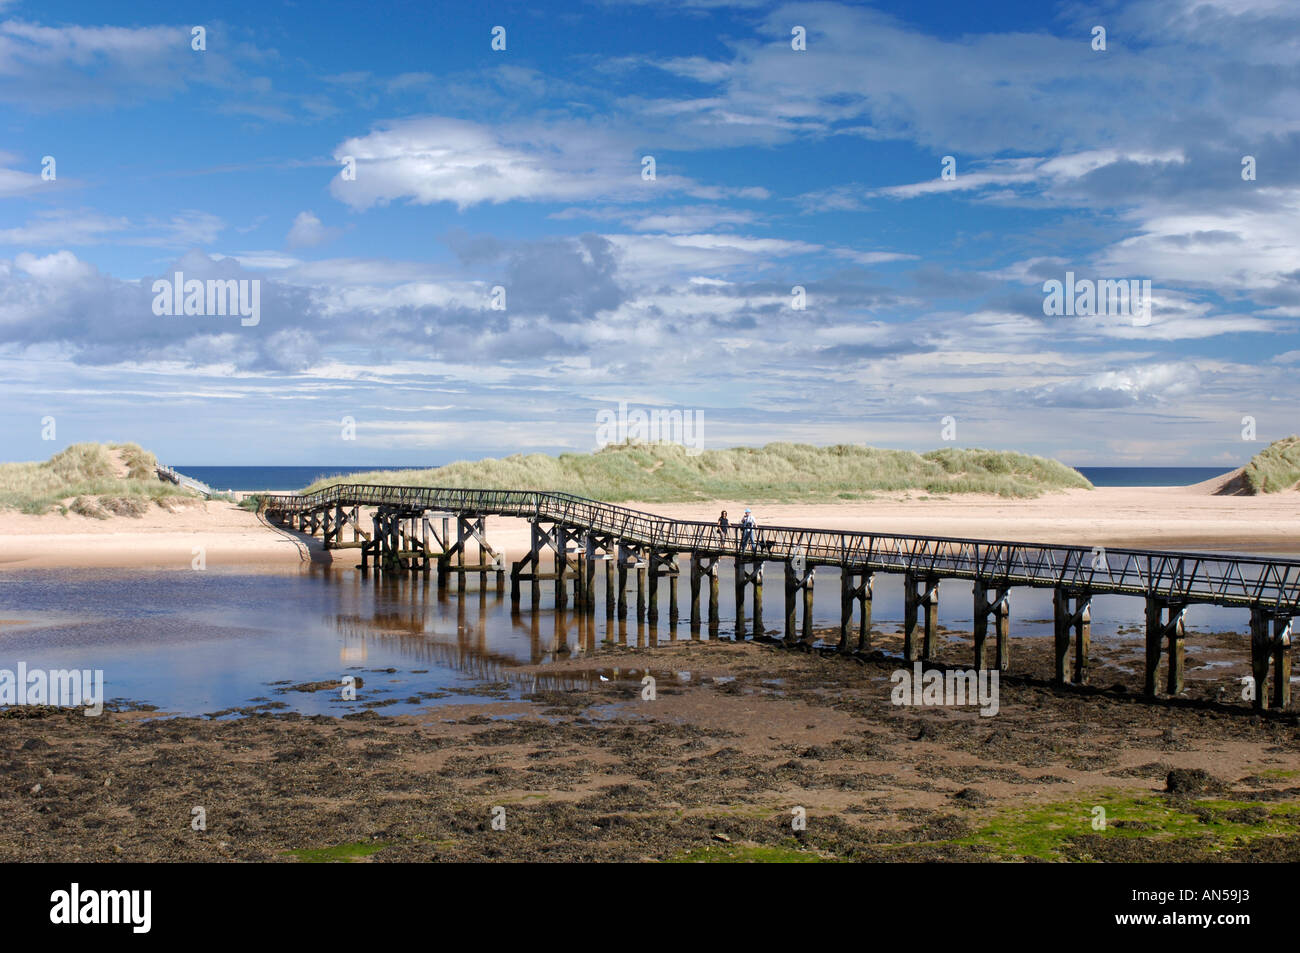 Lossiemouth footbridge to the sandy beach and dune system Morayshire, Scotland.  XPL 3227-321 - Stock Image